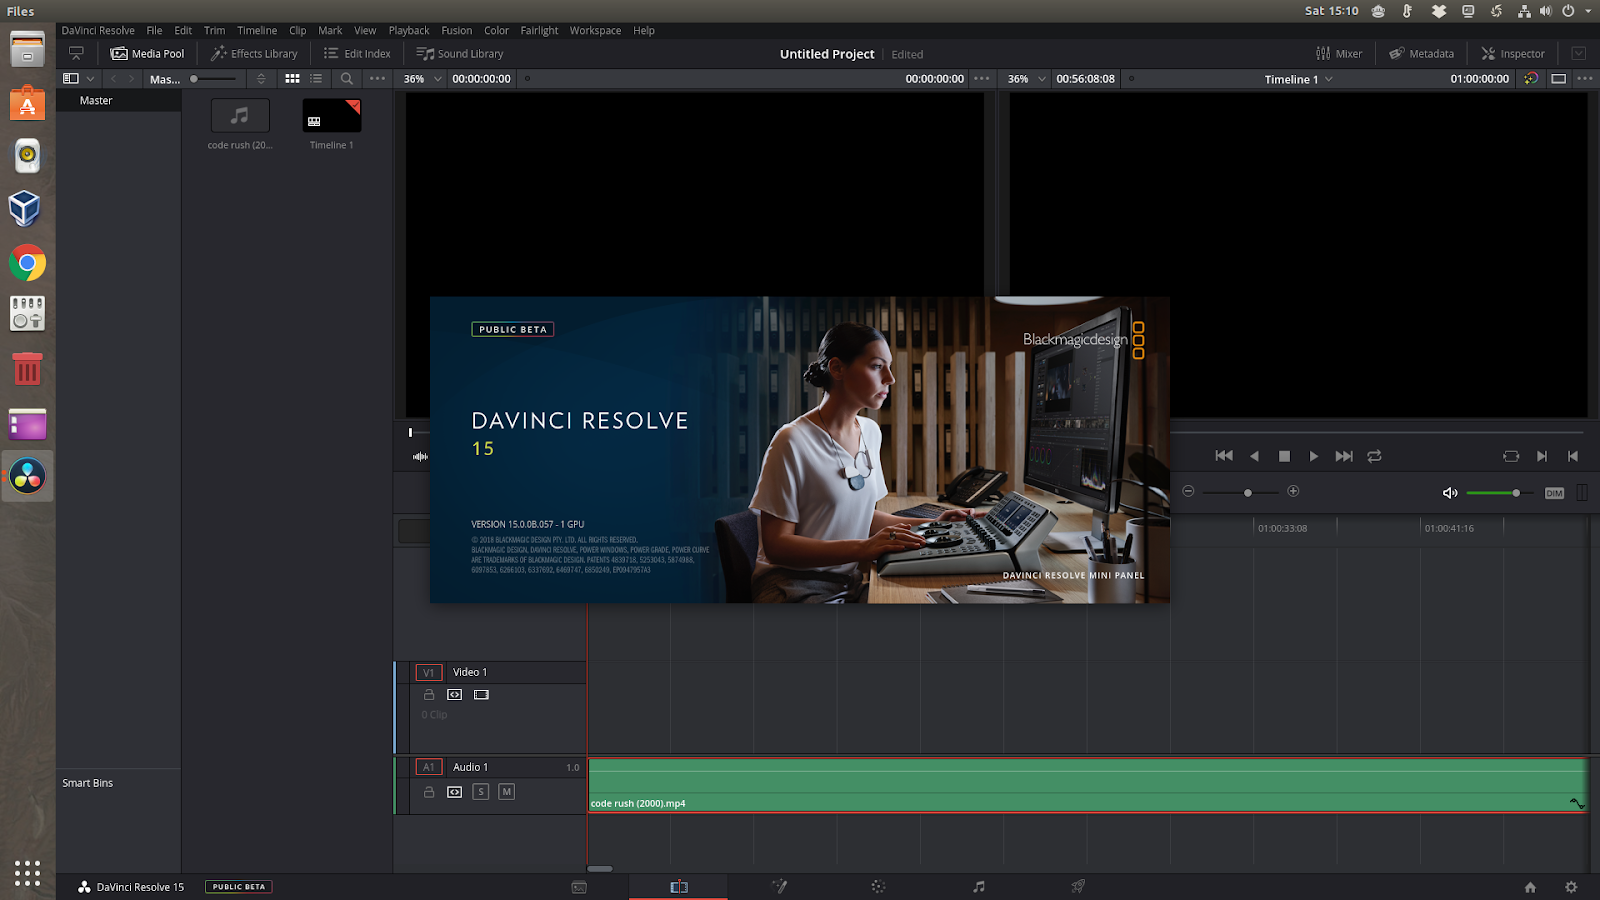 f55e4340816 How To Install DaVinci Resolve 16 Or 15 In Ubuntu, Linux Mint Or ...